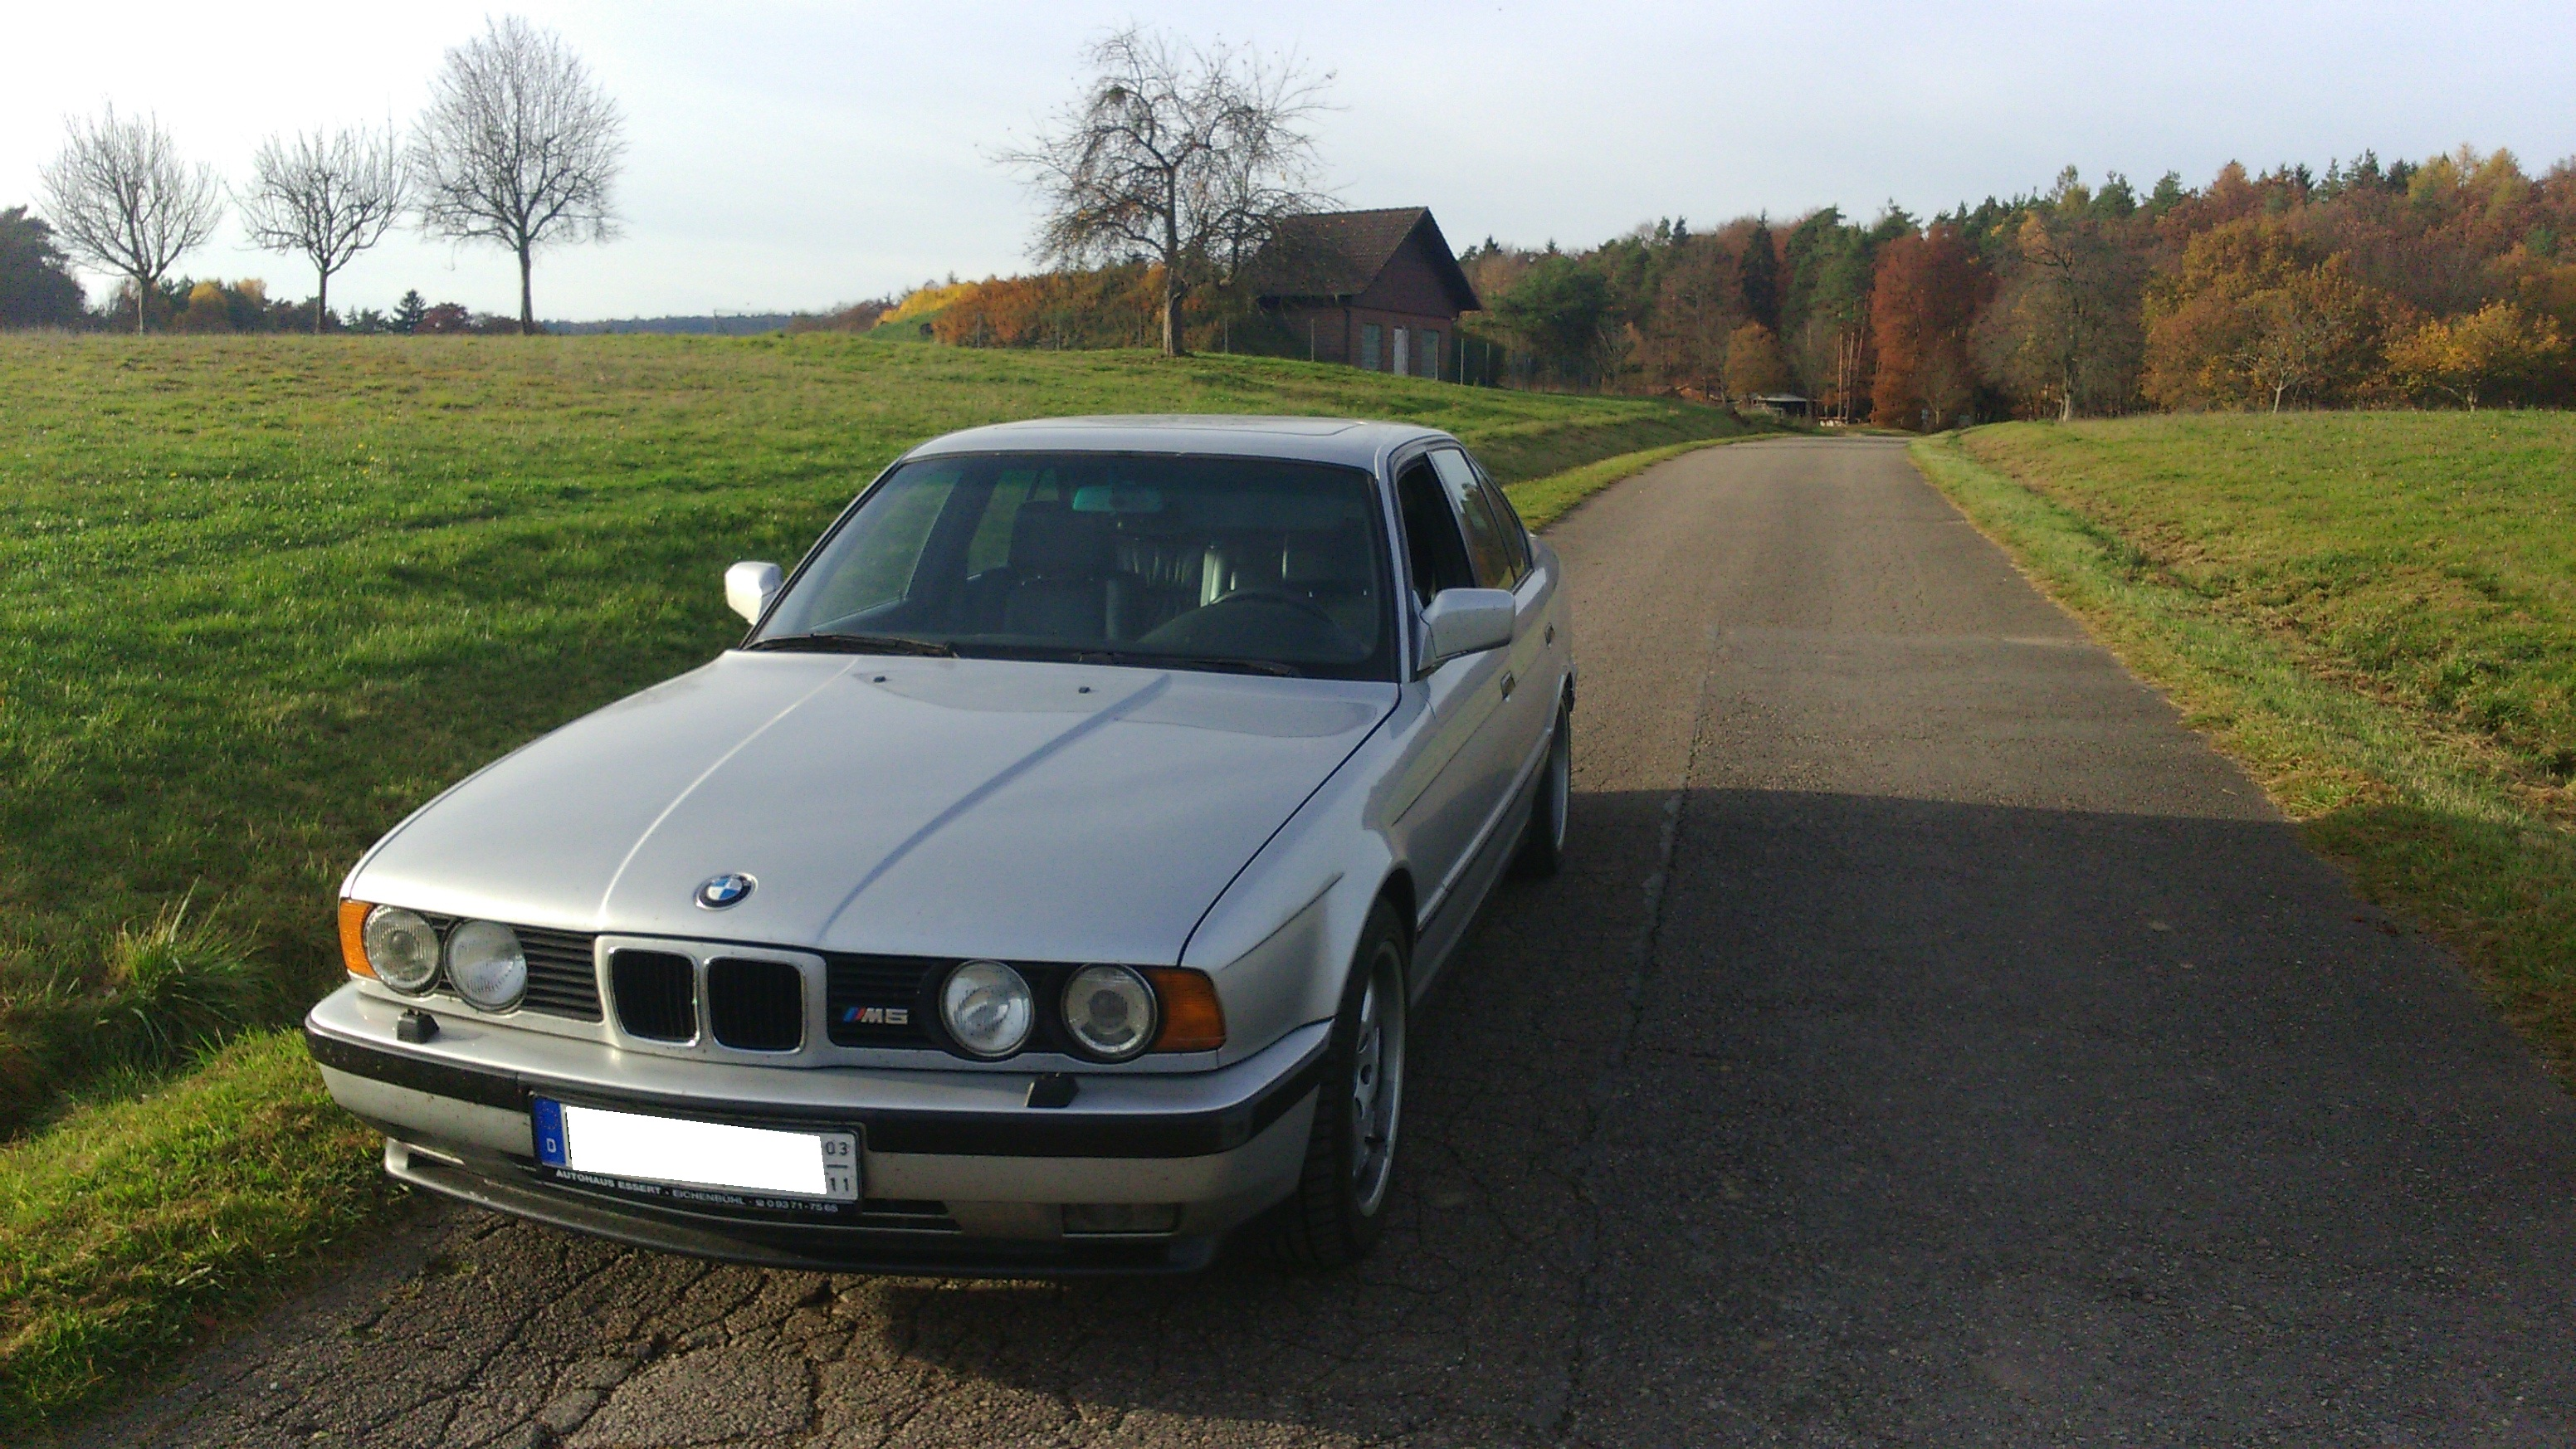 E34 buyers advice and engine guide    Ohh this is a long one